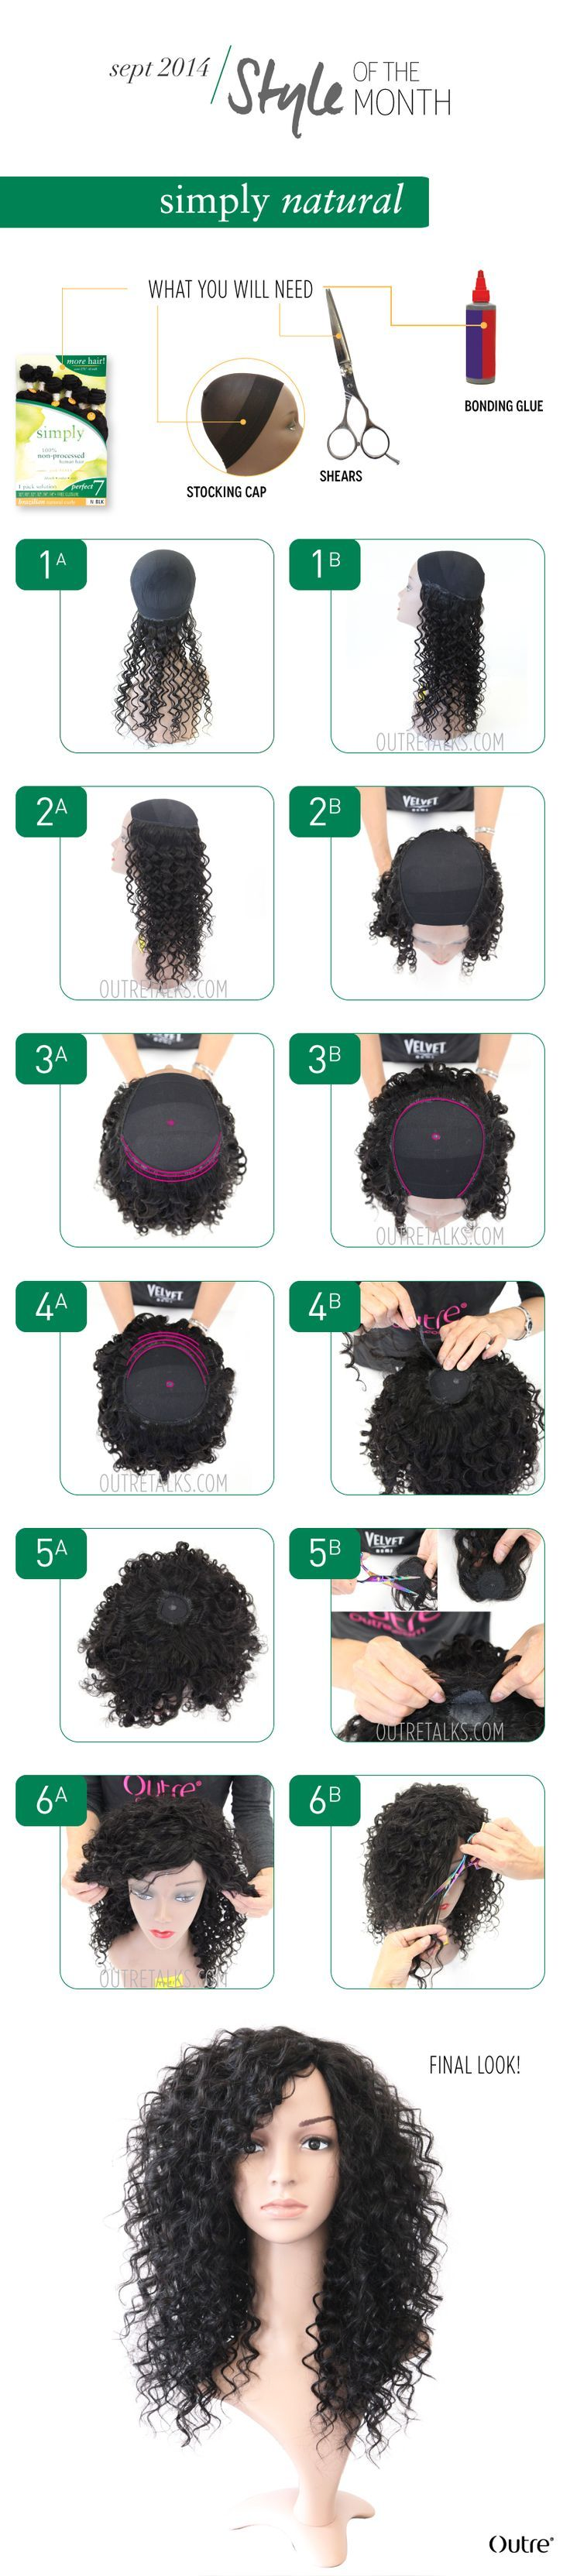 Pin di Ashley Foster On Hair Extensions Pinterest-4992